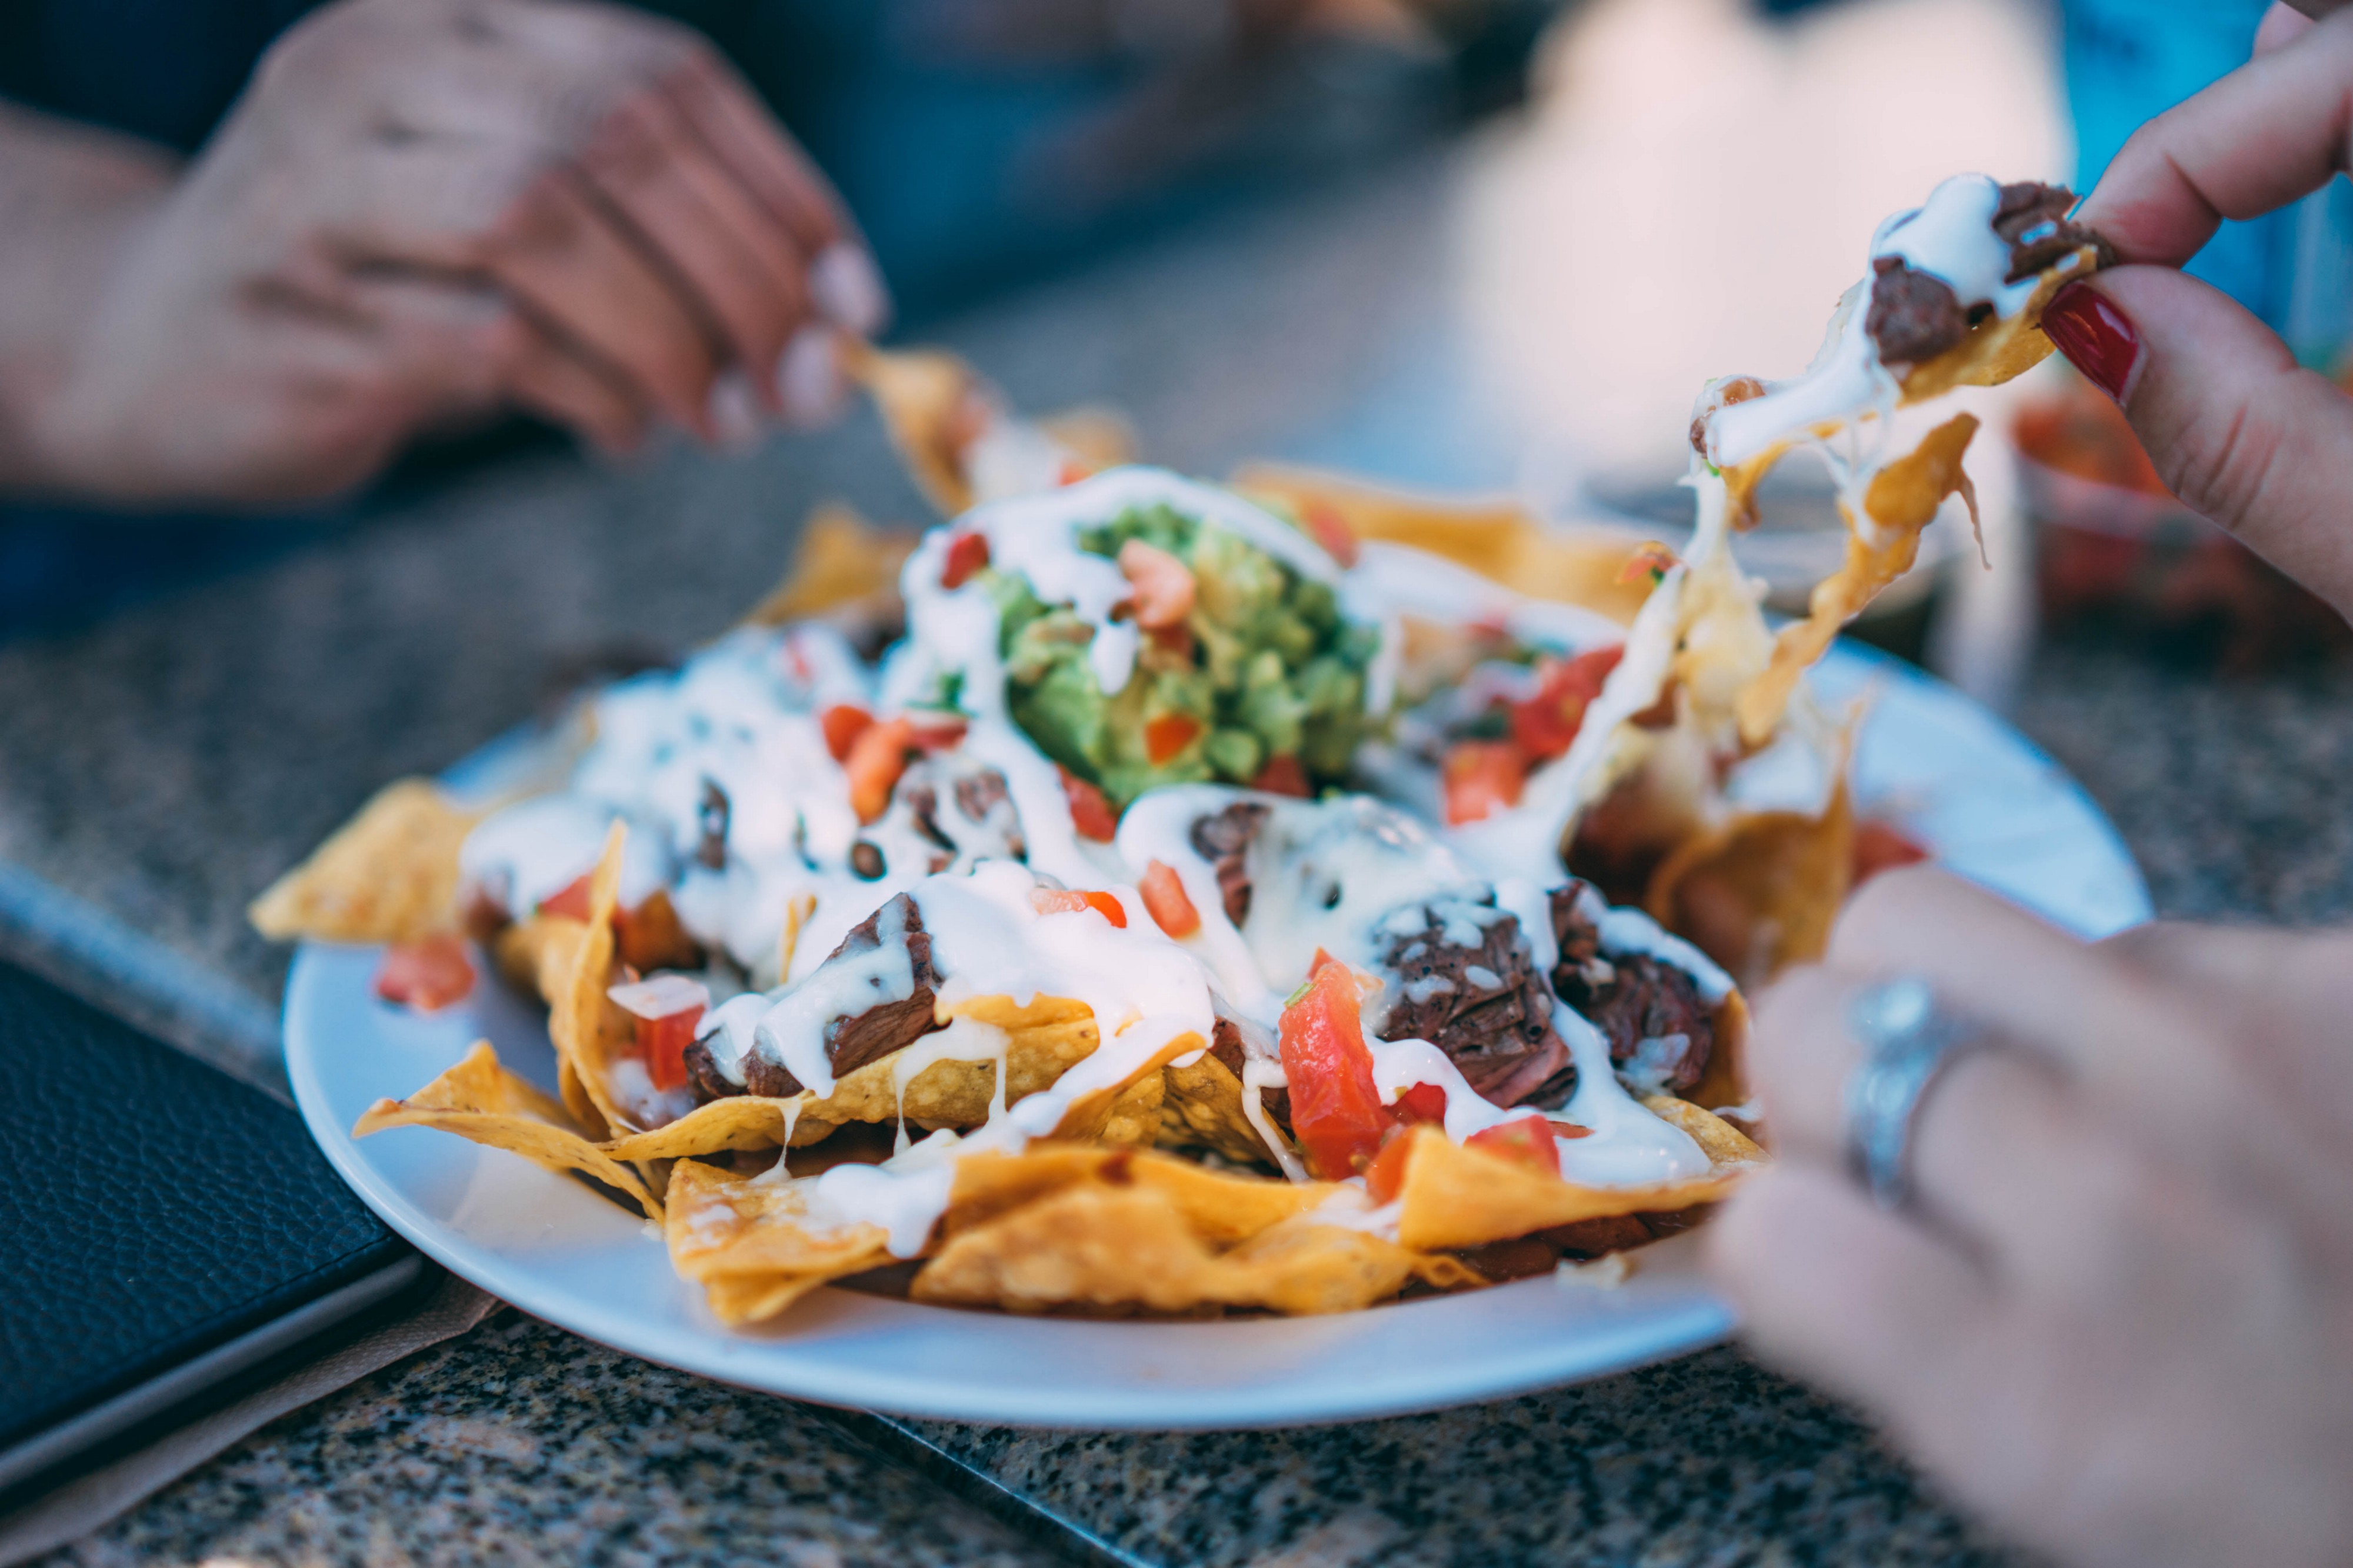 large plate of nachos being shared as an appetizer at a party